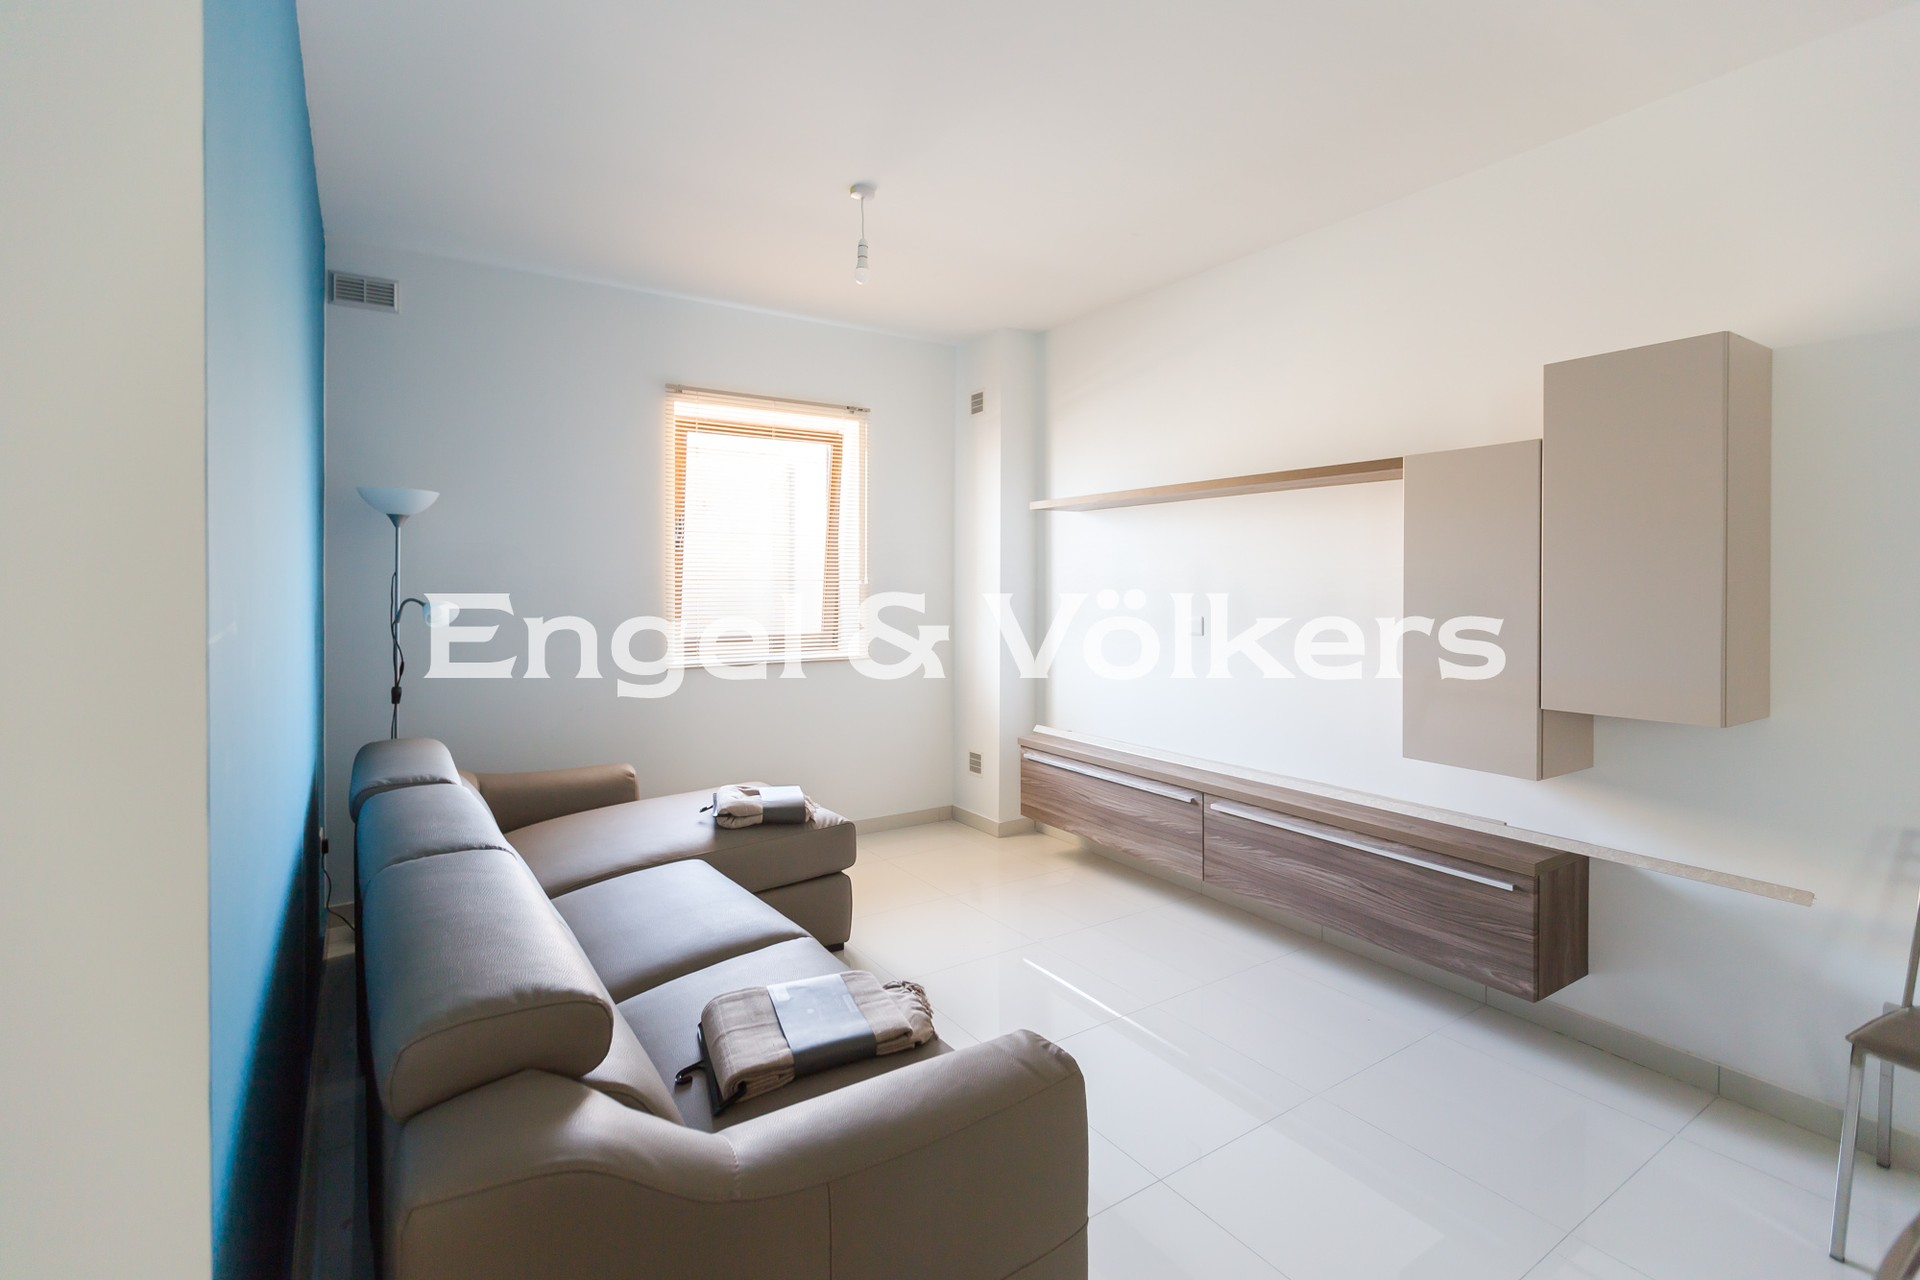 Apartment in Mgarr - Apartment, Mgarr, Open Plan